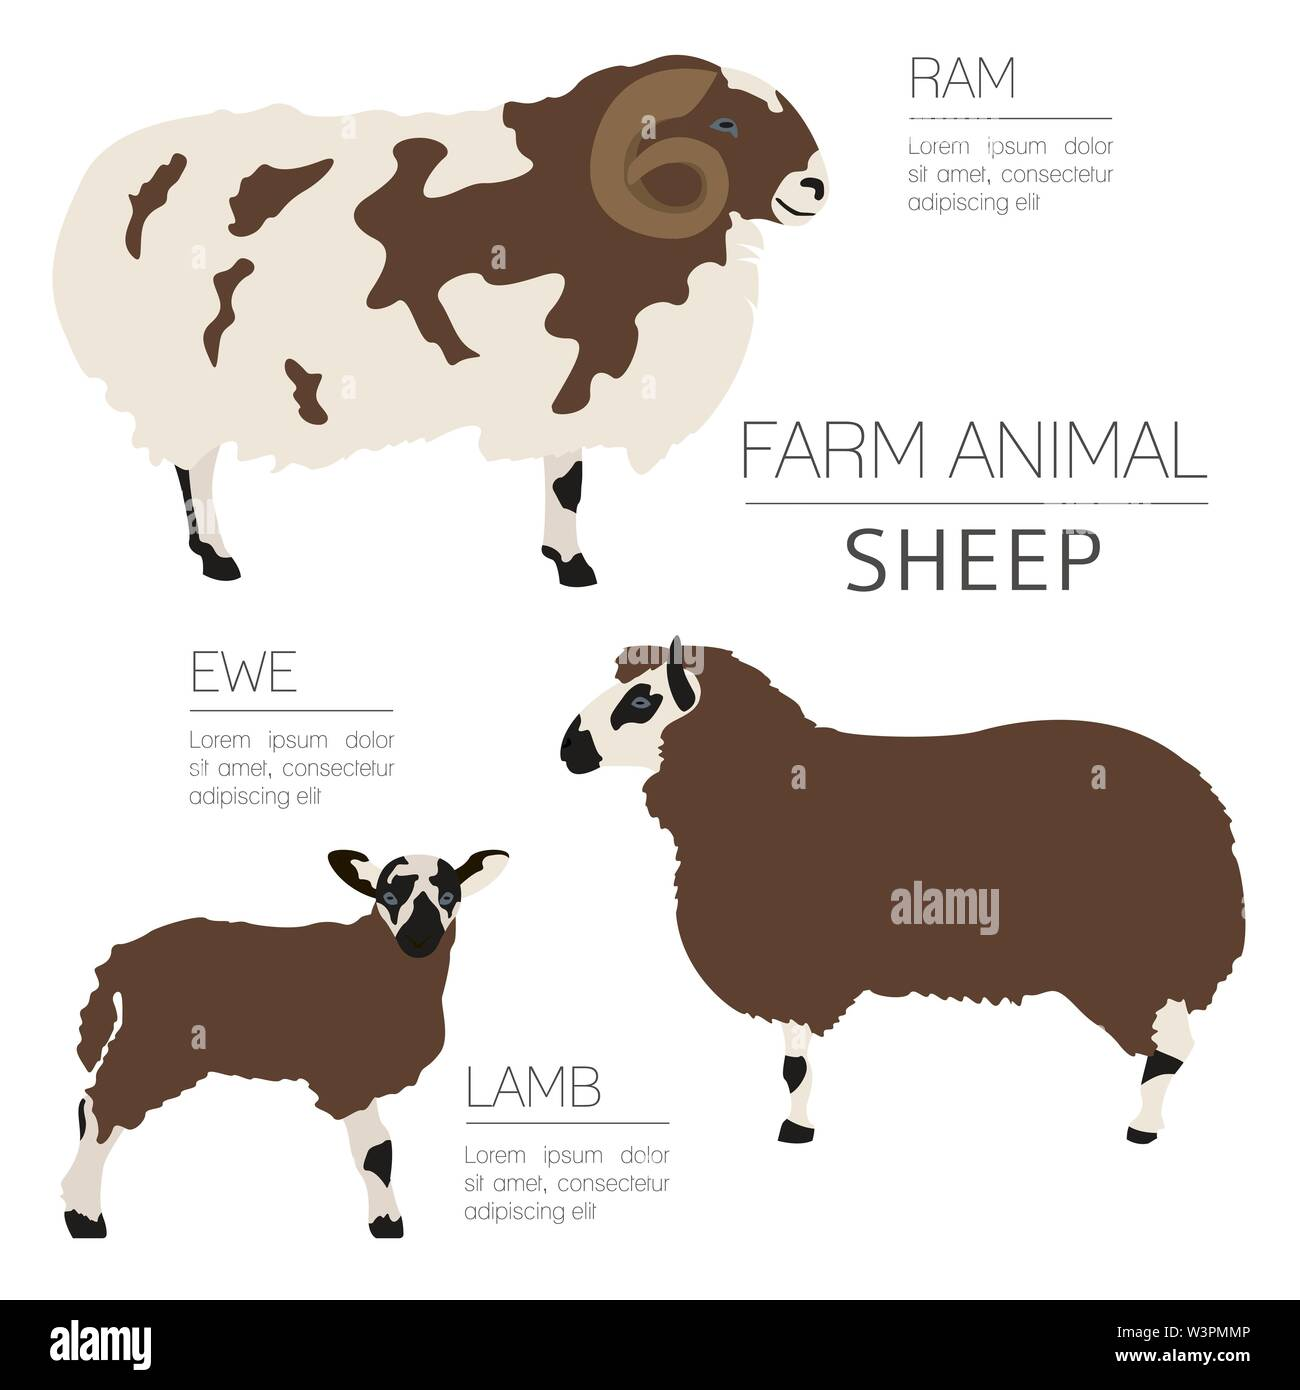 Sheep farming infographic template. Ram, ewe, lamb family. Flat design. Vector illustration - Stock Image